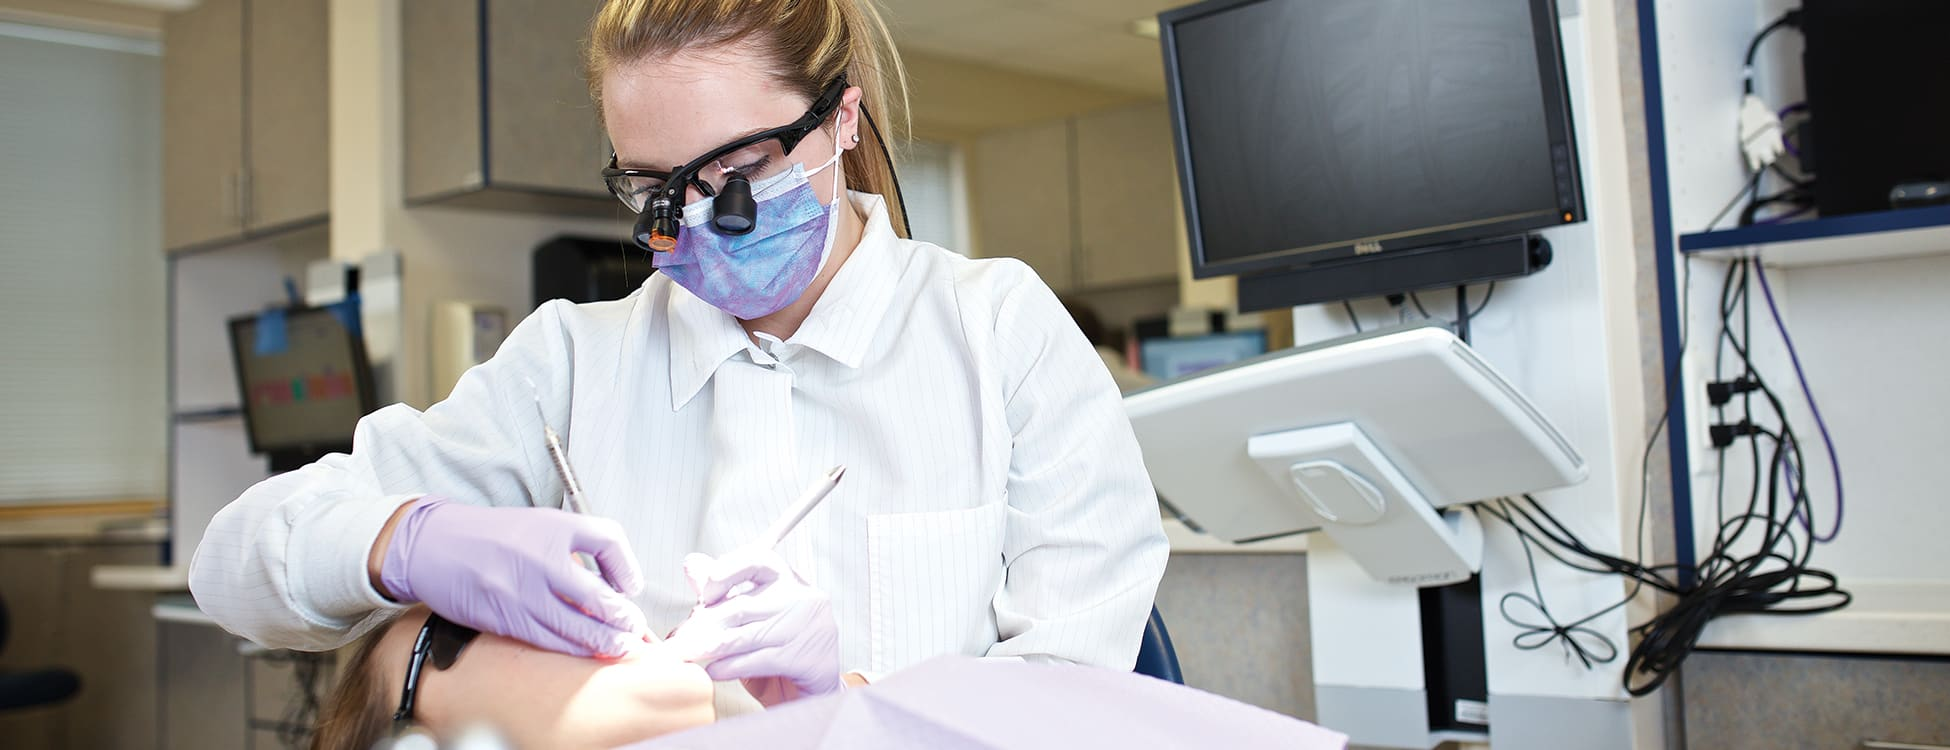 female student, dental hygiene, laboratory, hands on, teeth cleaning